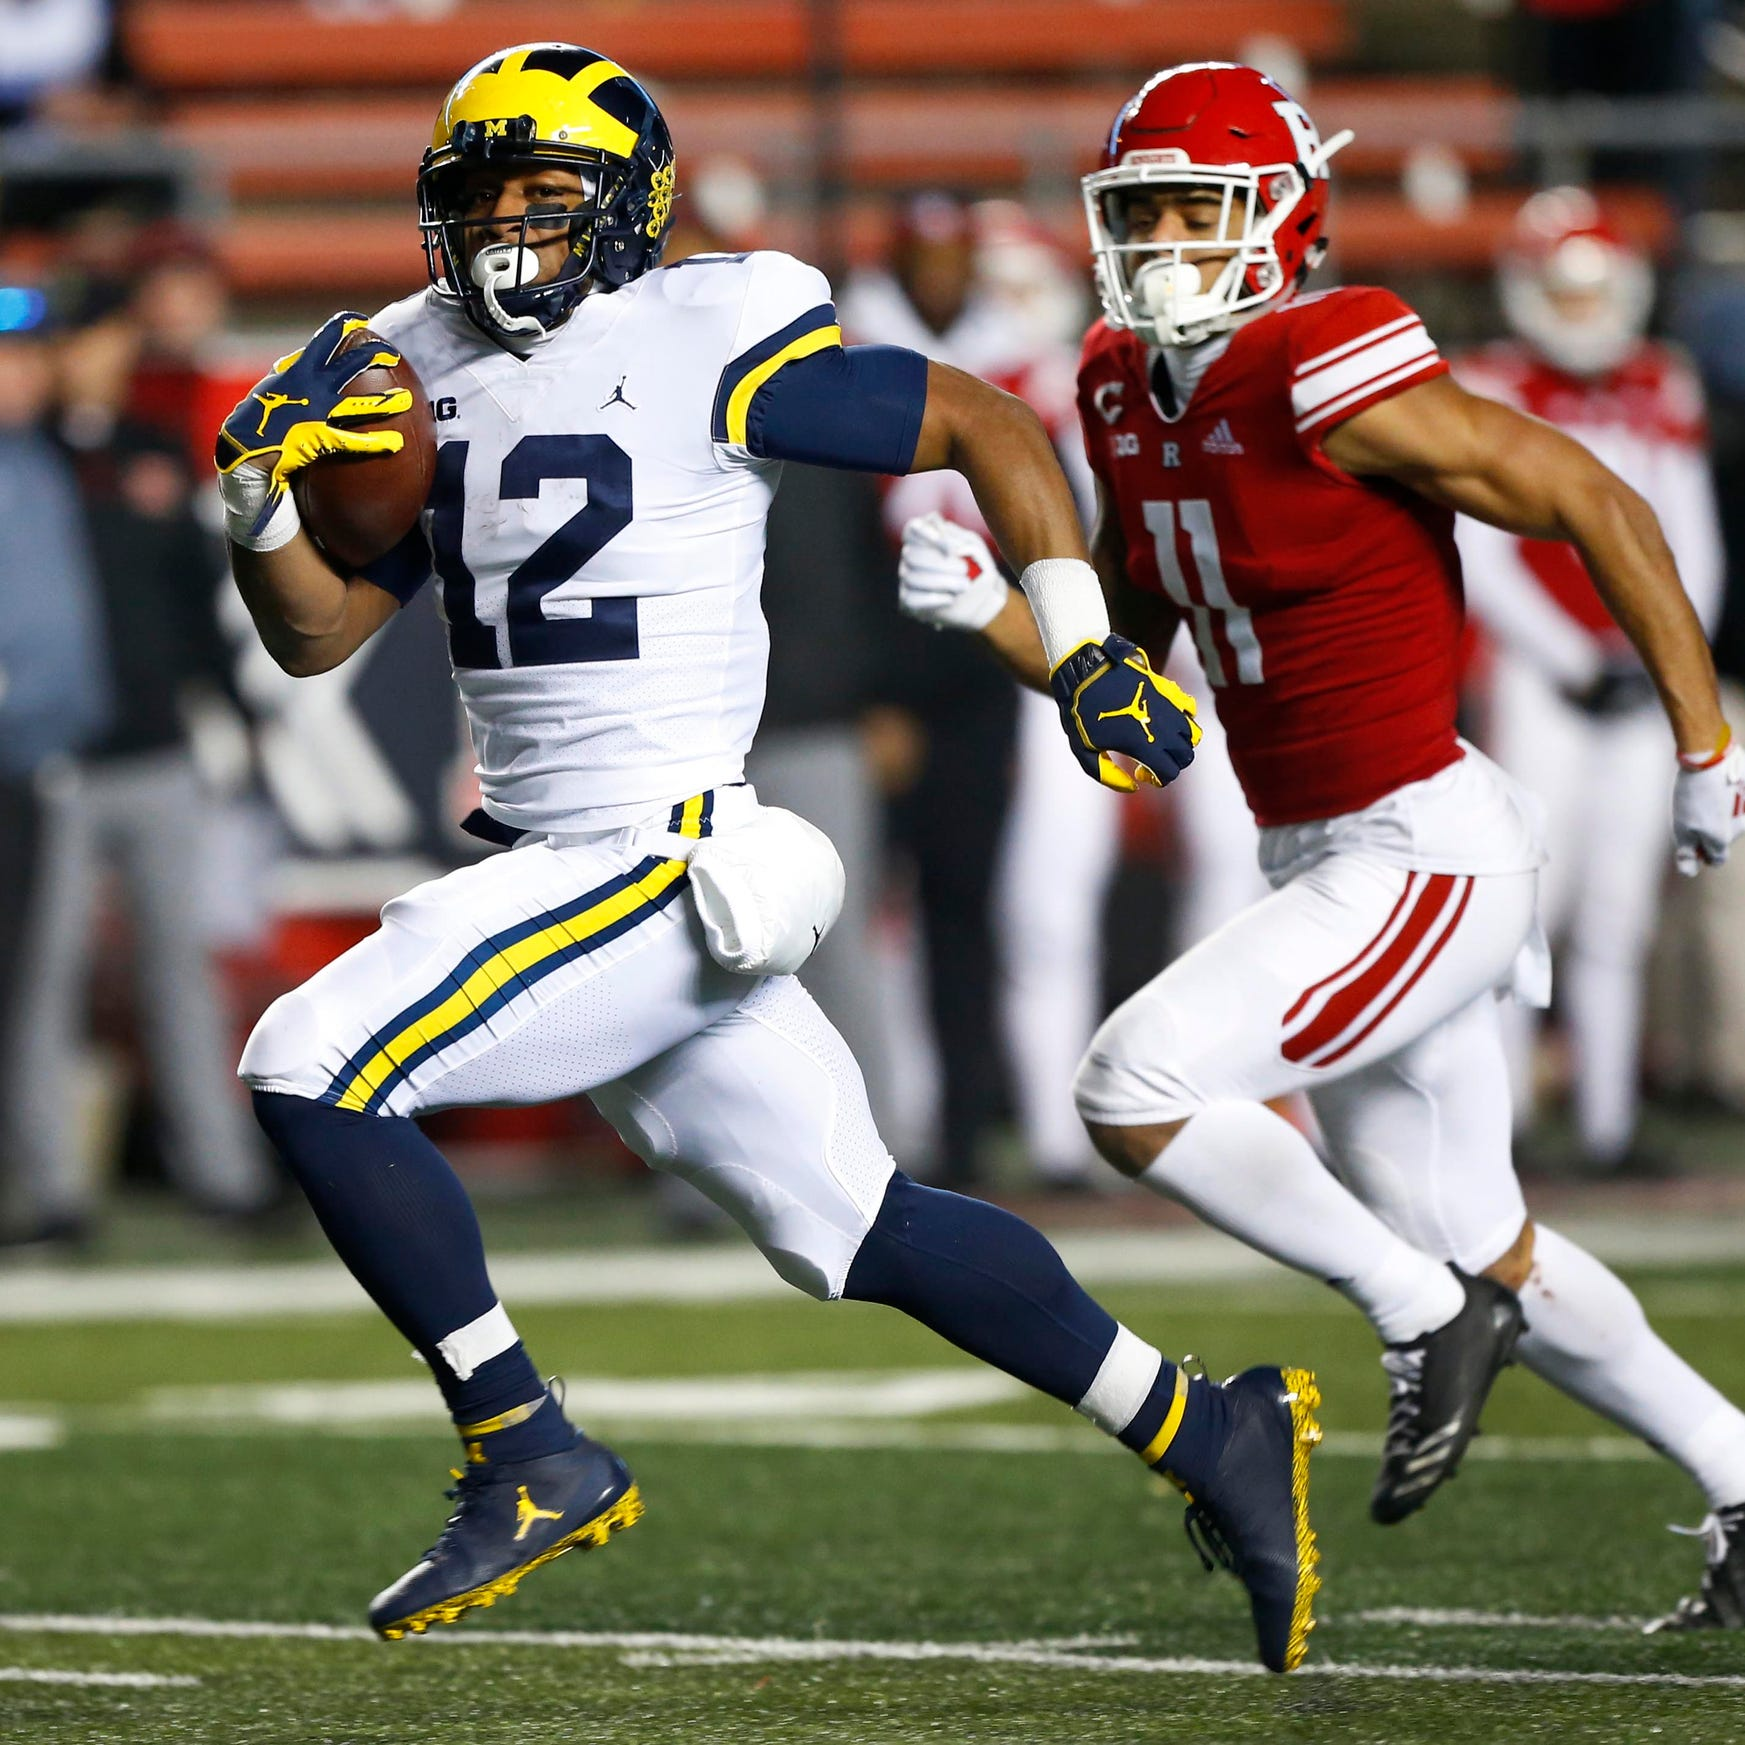 Michigan football loses RB production but welcomes talented youth